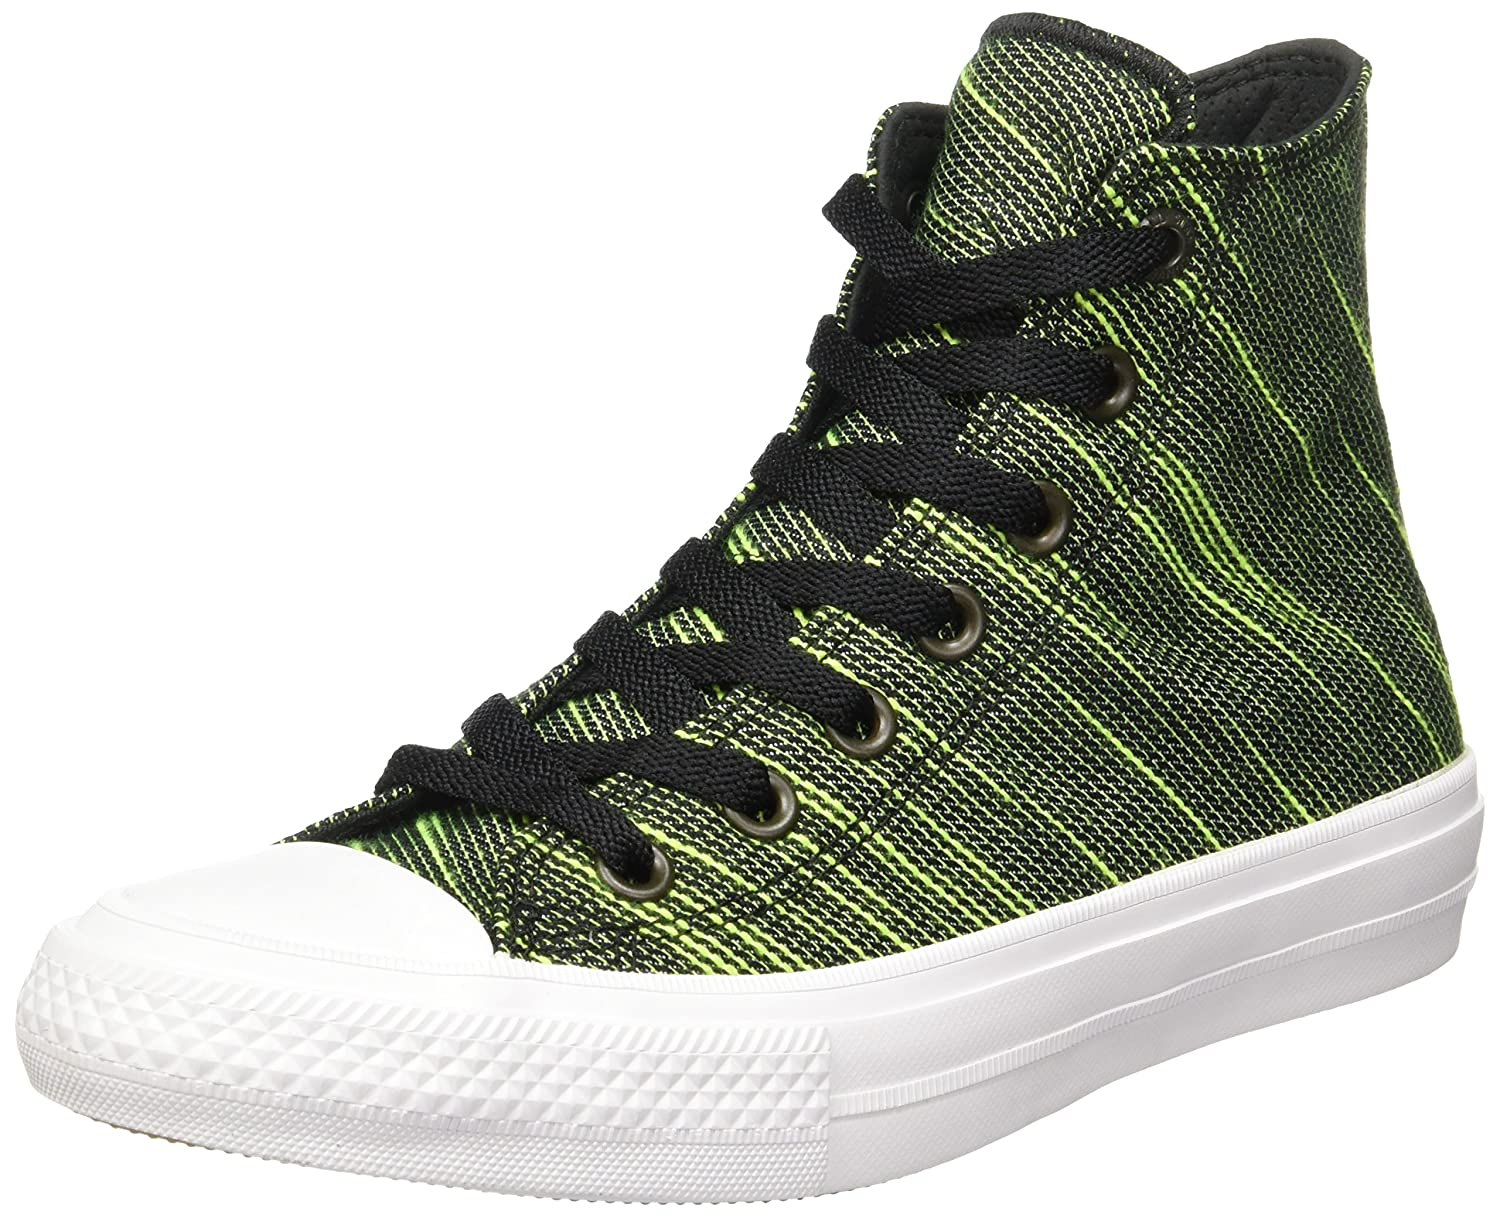 Converse Chuck Taylor All Star II High B012UW1162 5 D(M) US|Black / Volt